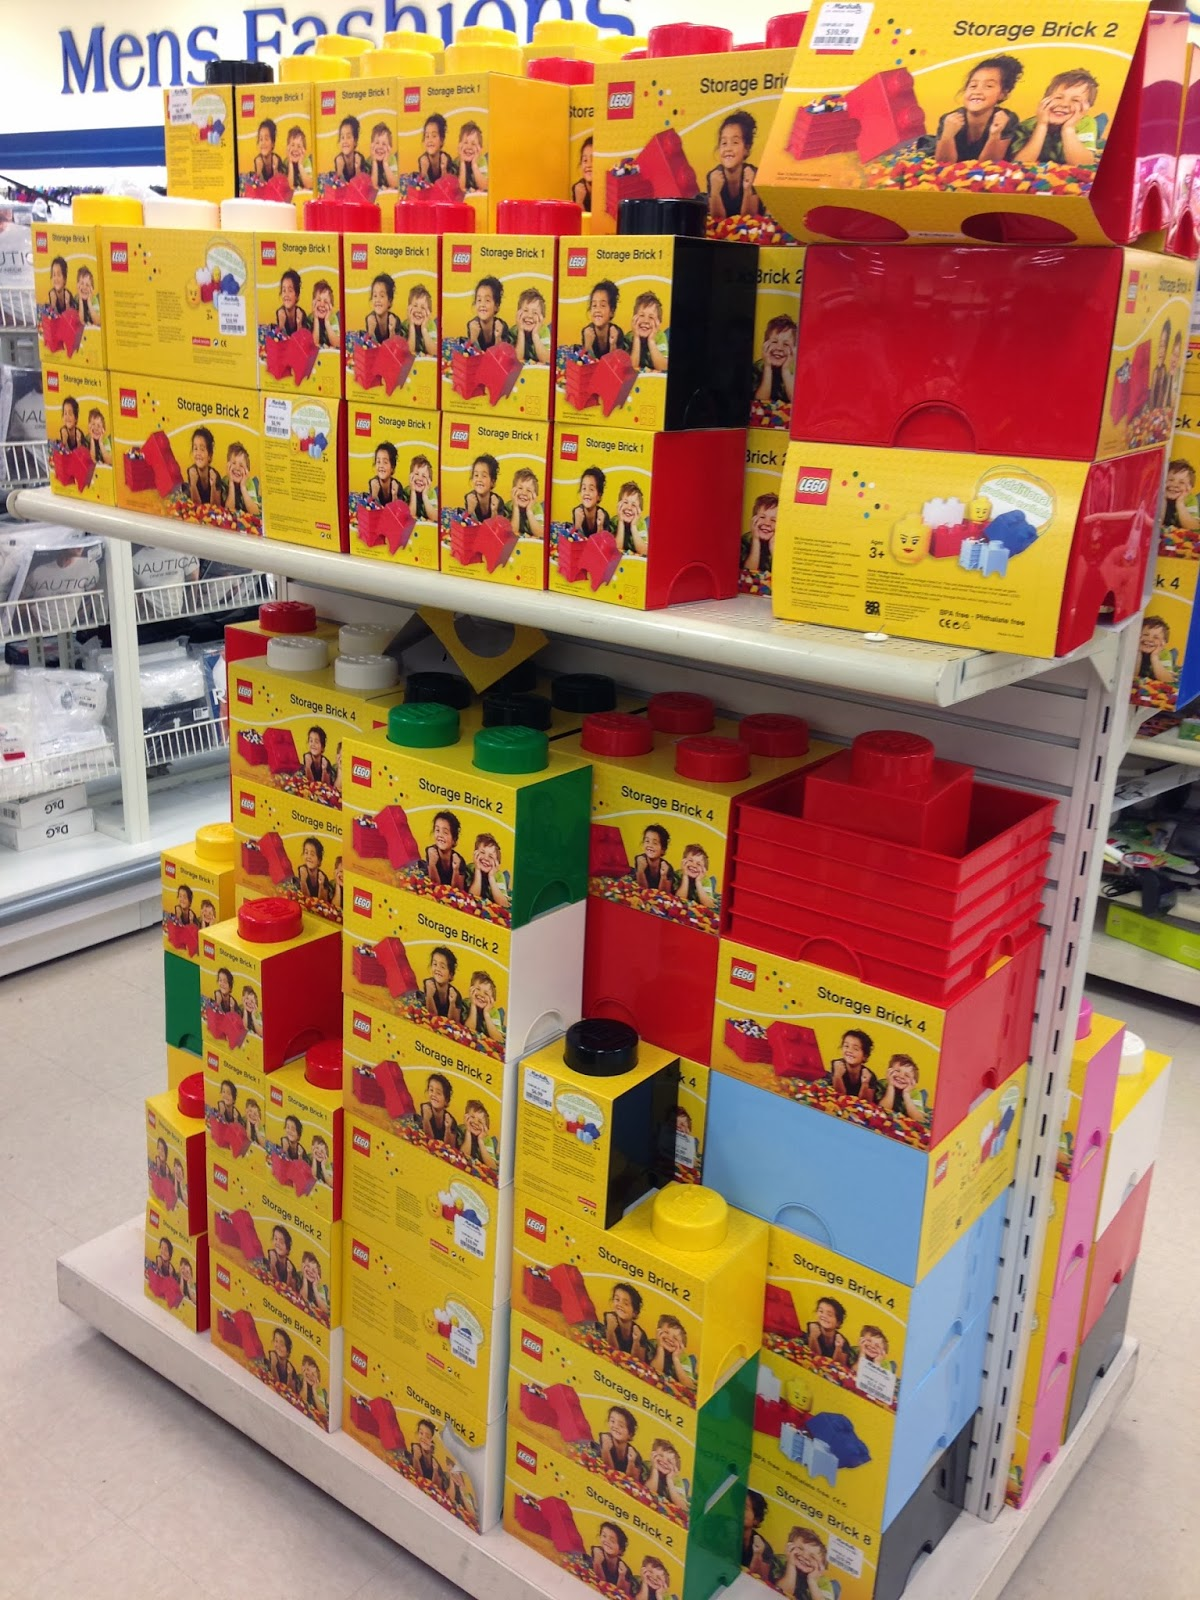 New Columbia Heights Pretty neat Lego storage containers at Marshalls